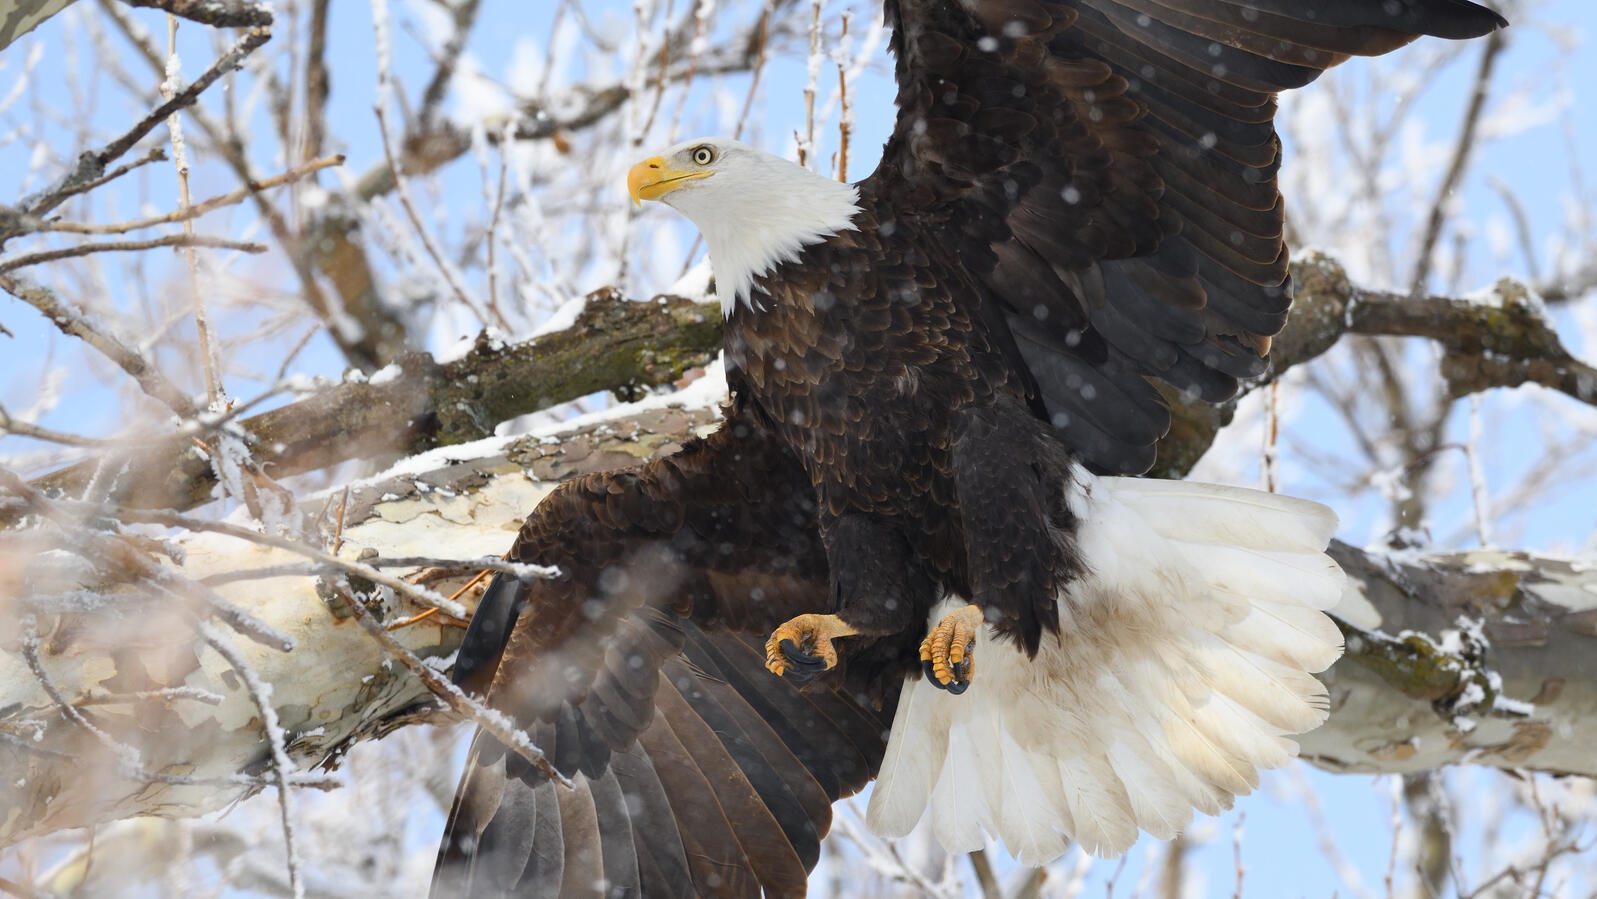 Bald Eagle Photo Credit: Alex Ghanayem Audubon Photo Awards